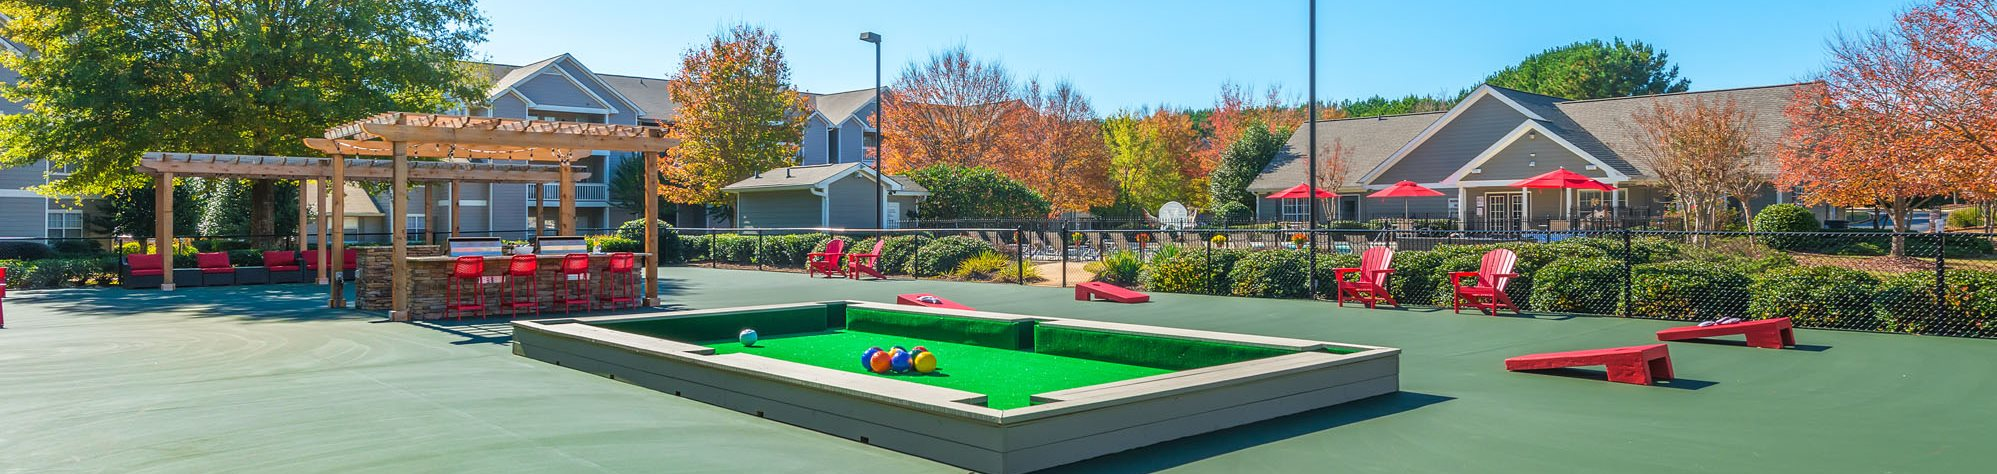 World-Class-Amenities at Echelon Park, McDonough, Georgia